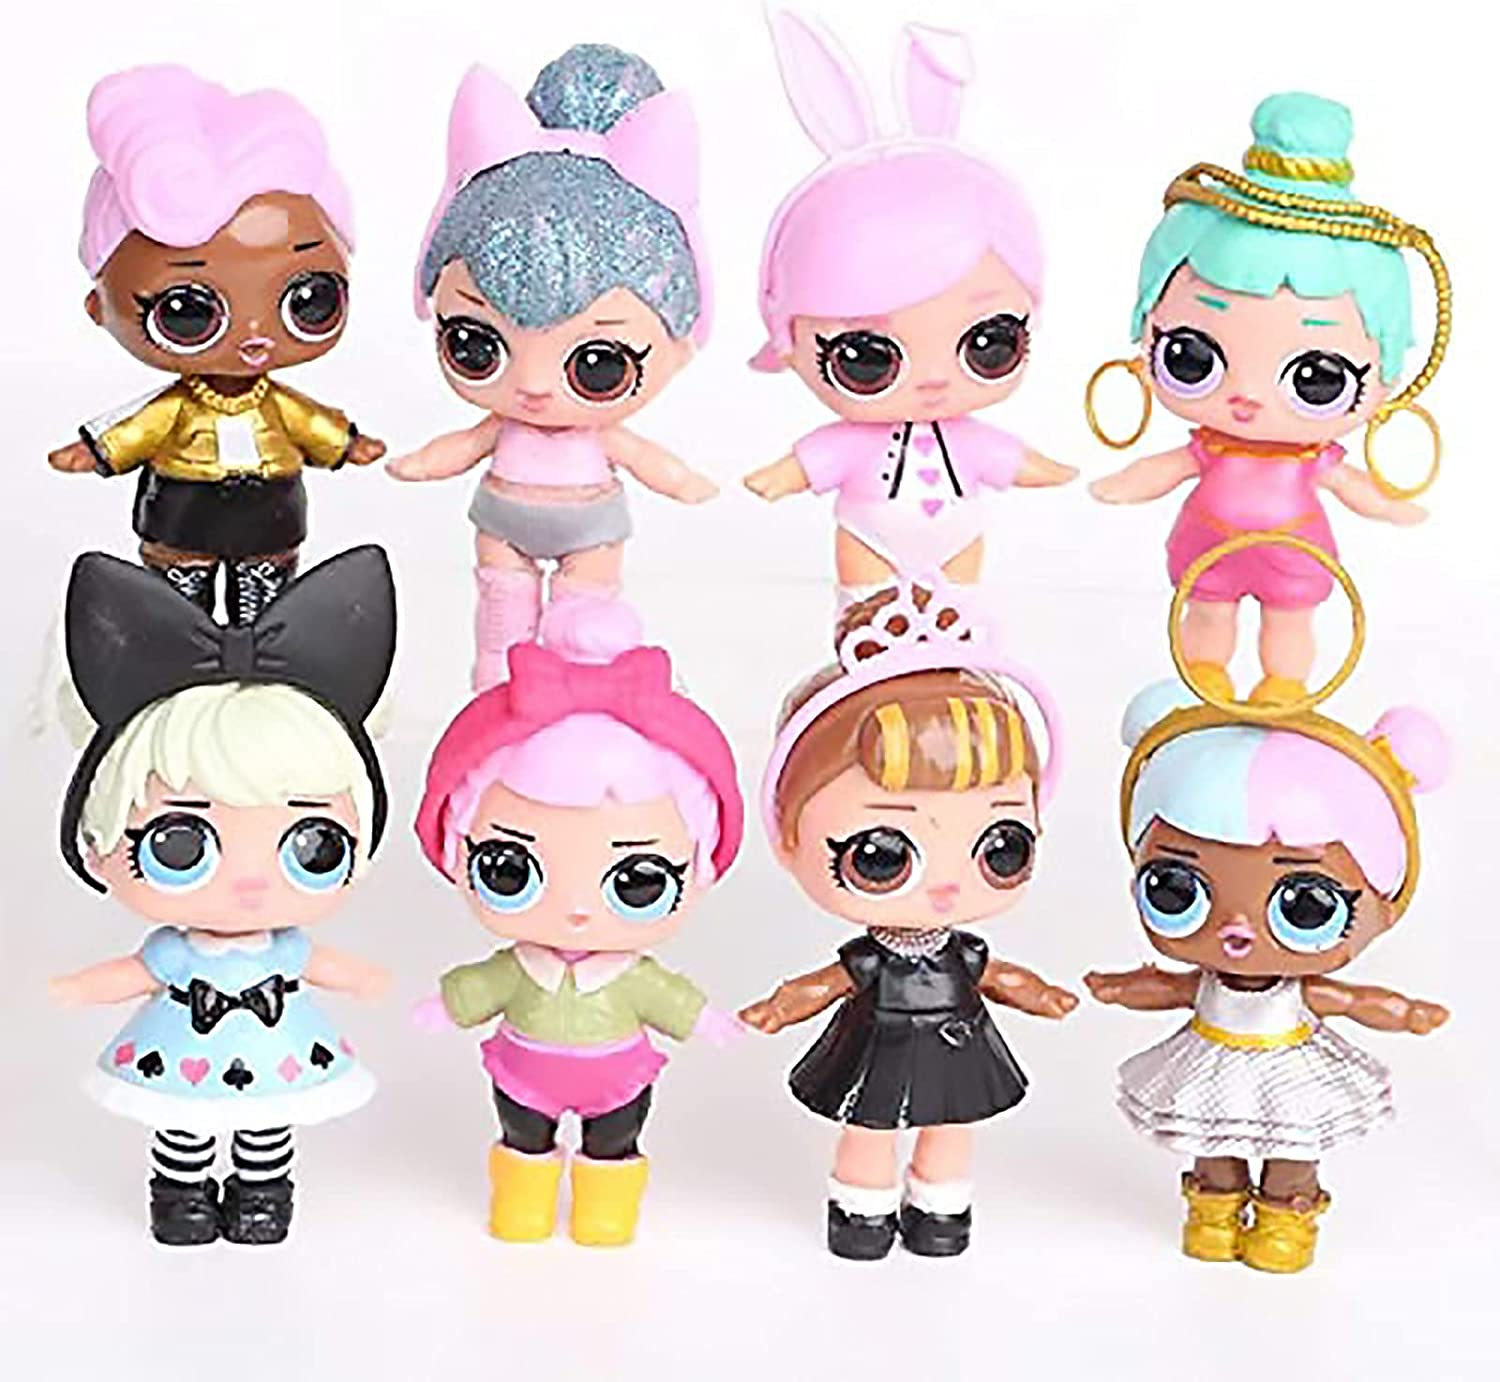 8PCS sold out Dolls Cake Toppers Decoration Birthday Sales of SALE items from new works P Figures for Girls